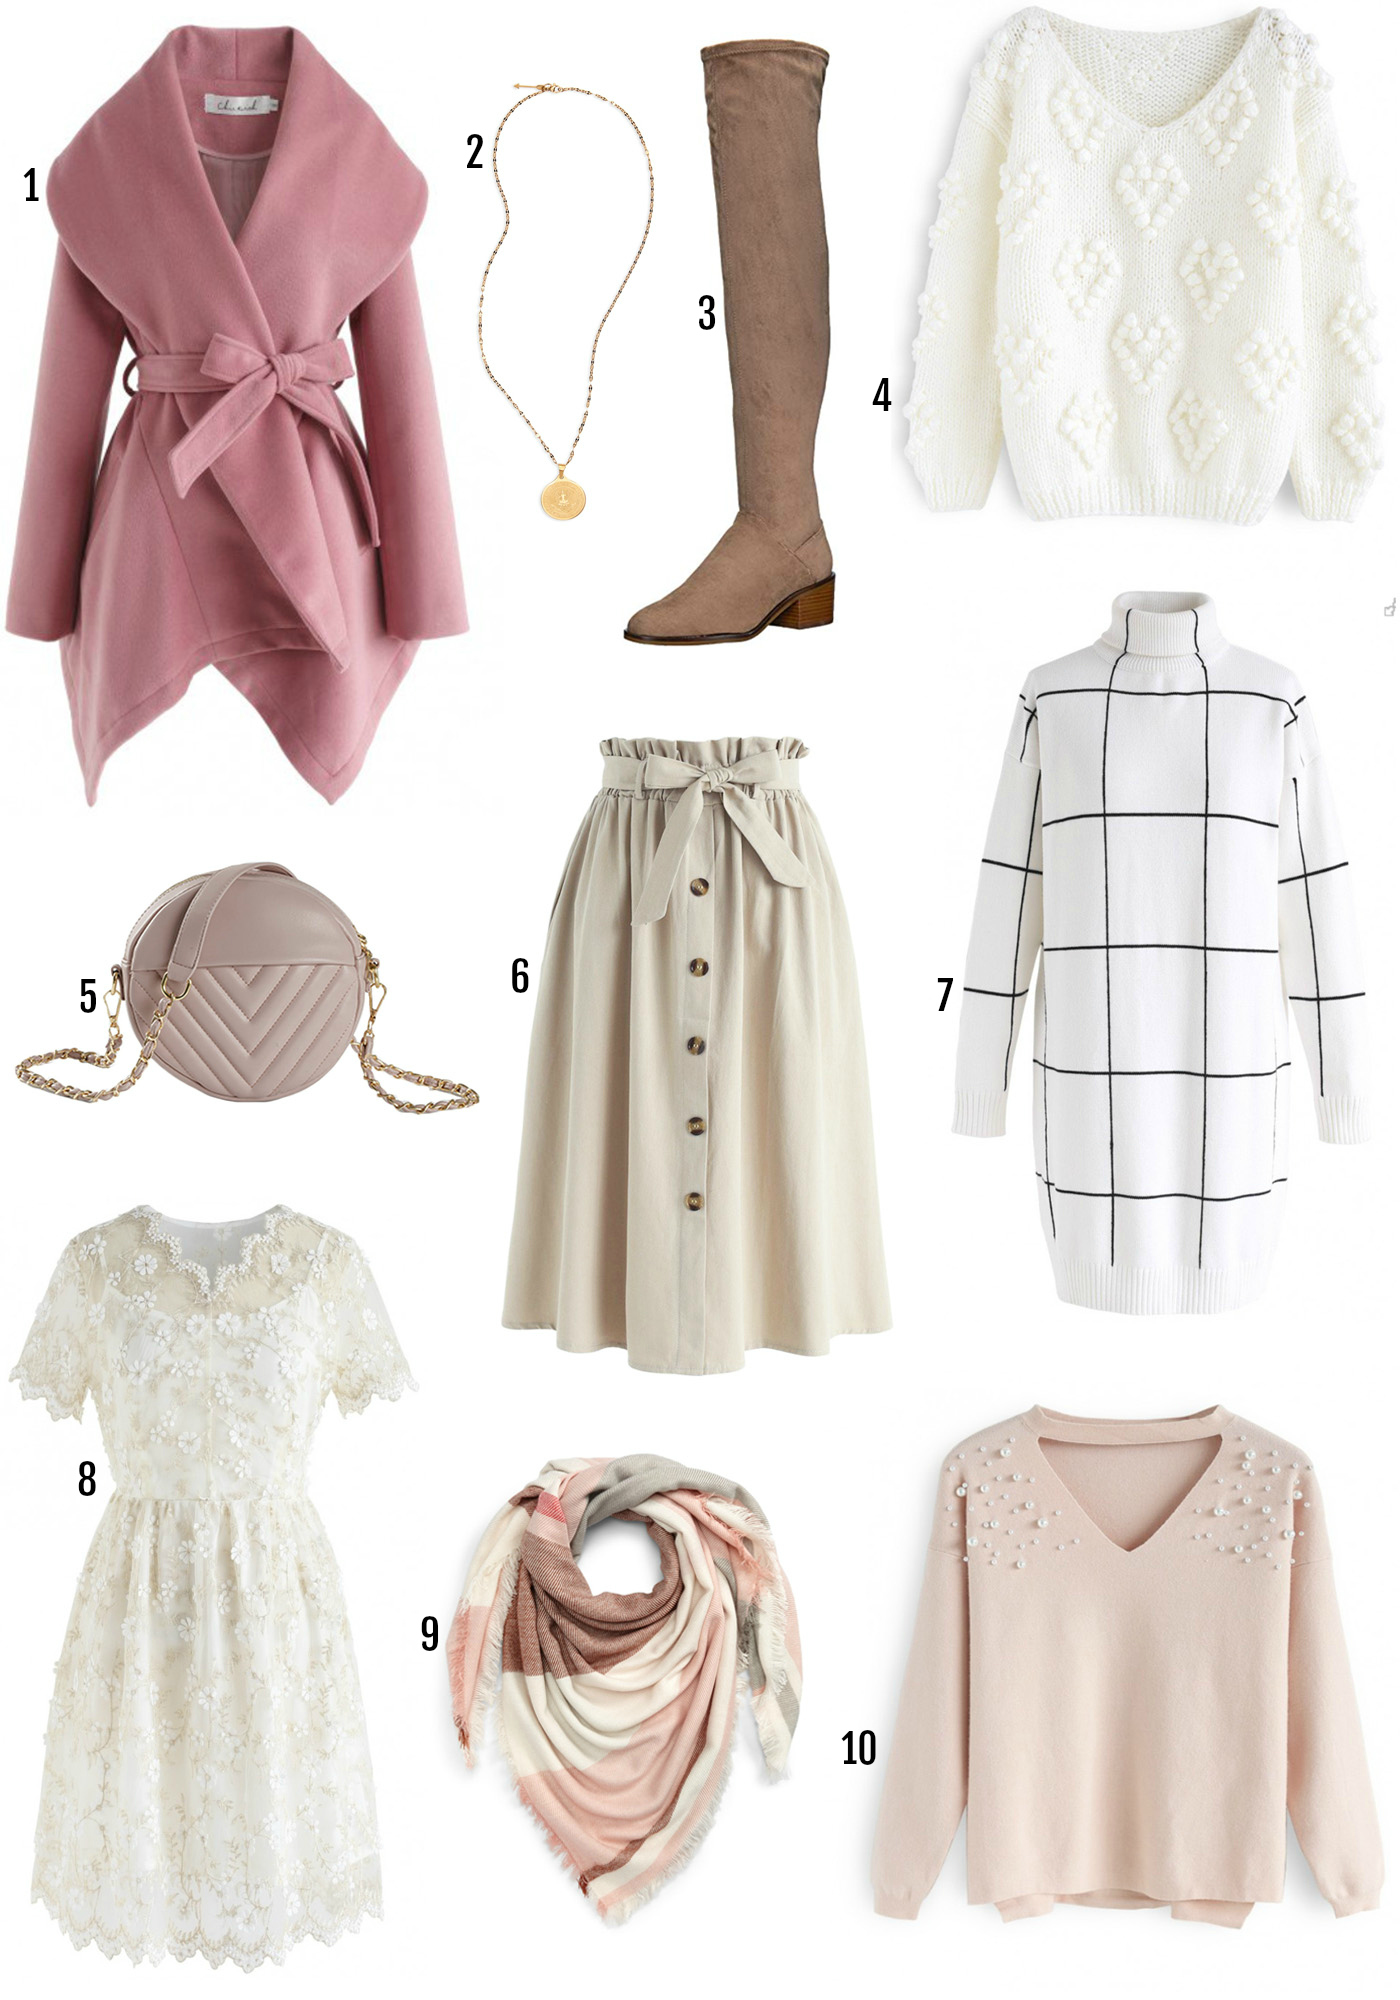 Mash Elle beauty blogger fall Fashion finds white pink fall clothes | where to buy the best fast fashion | trendy clothes for women | designer bag dupes | pearl embellished top | over the knee boots | stuart weitzman over the knee dupes